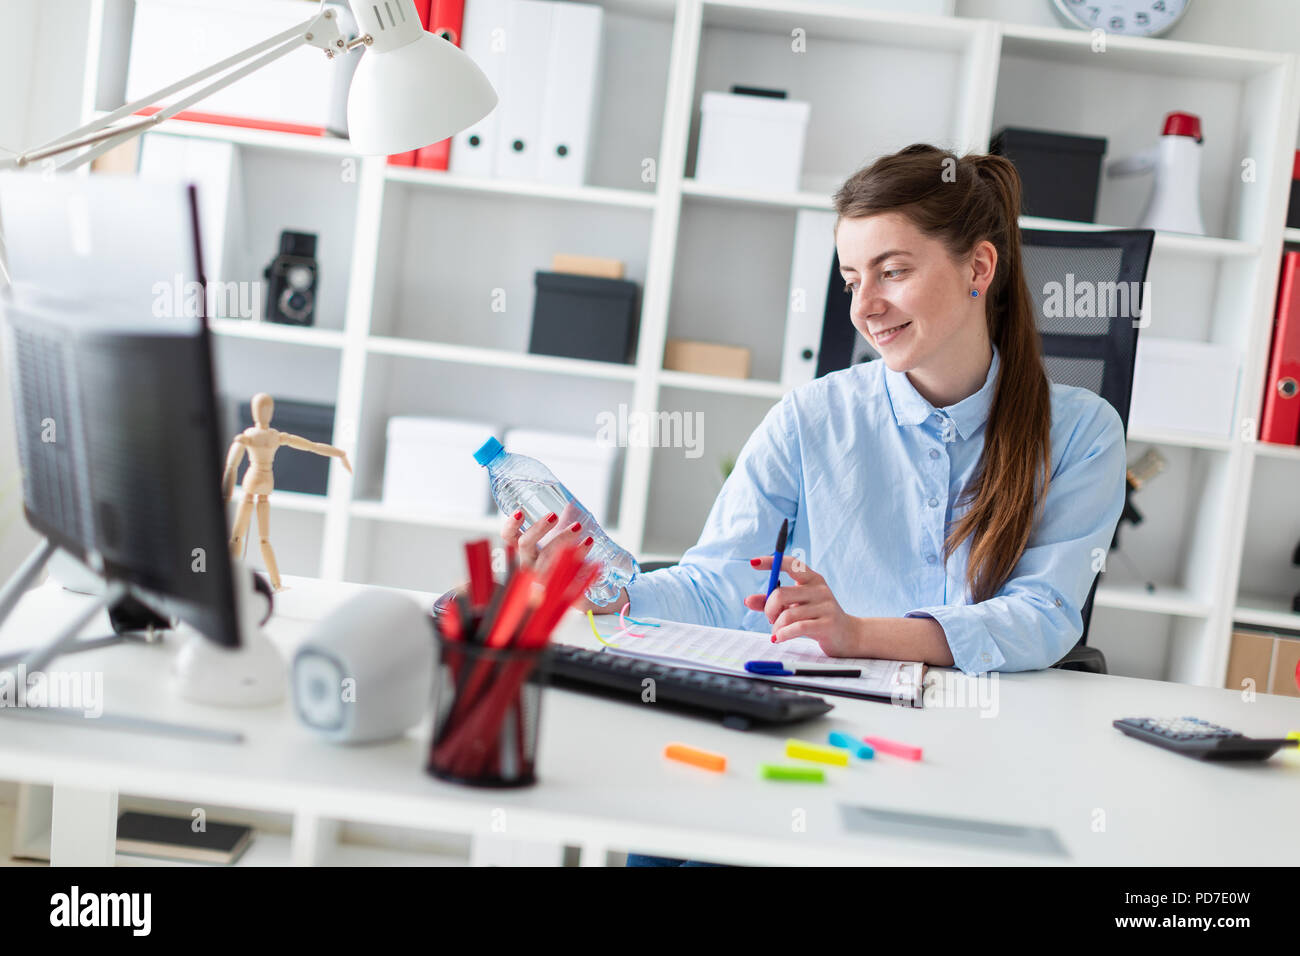 A young girl sits at a table in the office and holds a water bottle and a pen in her hands. - Stock Image